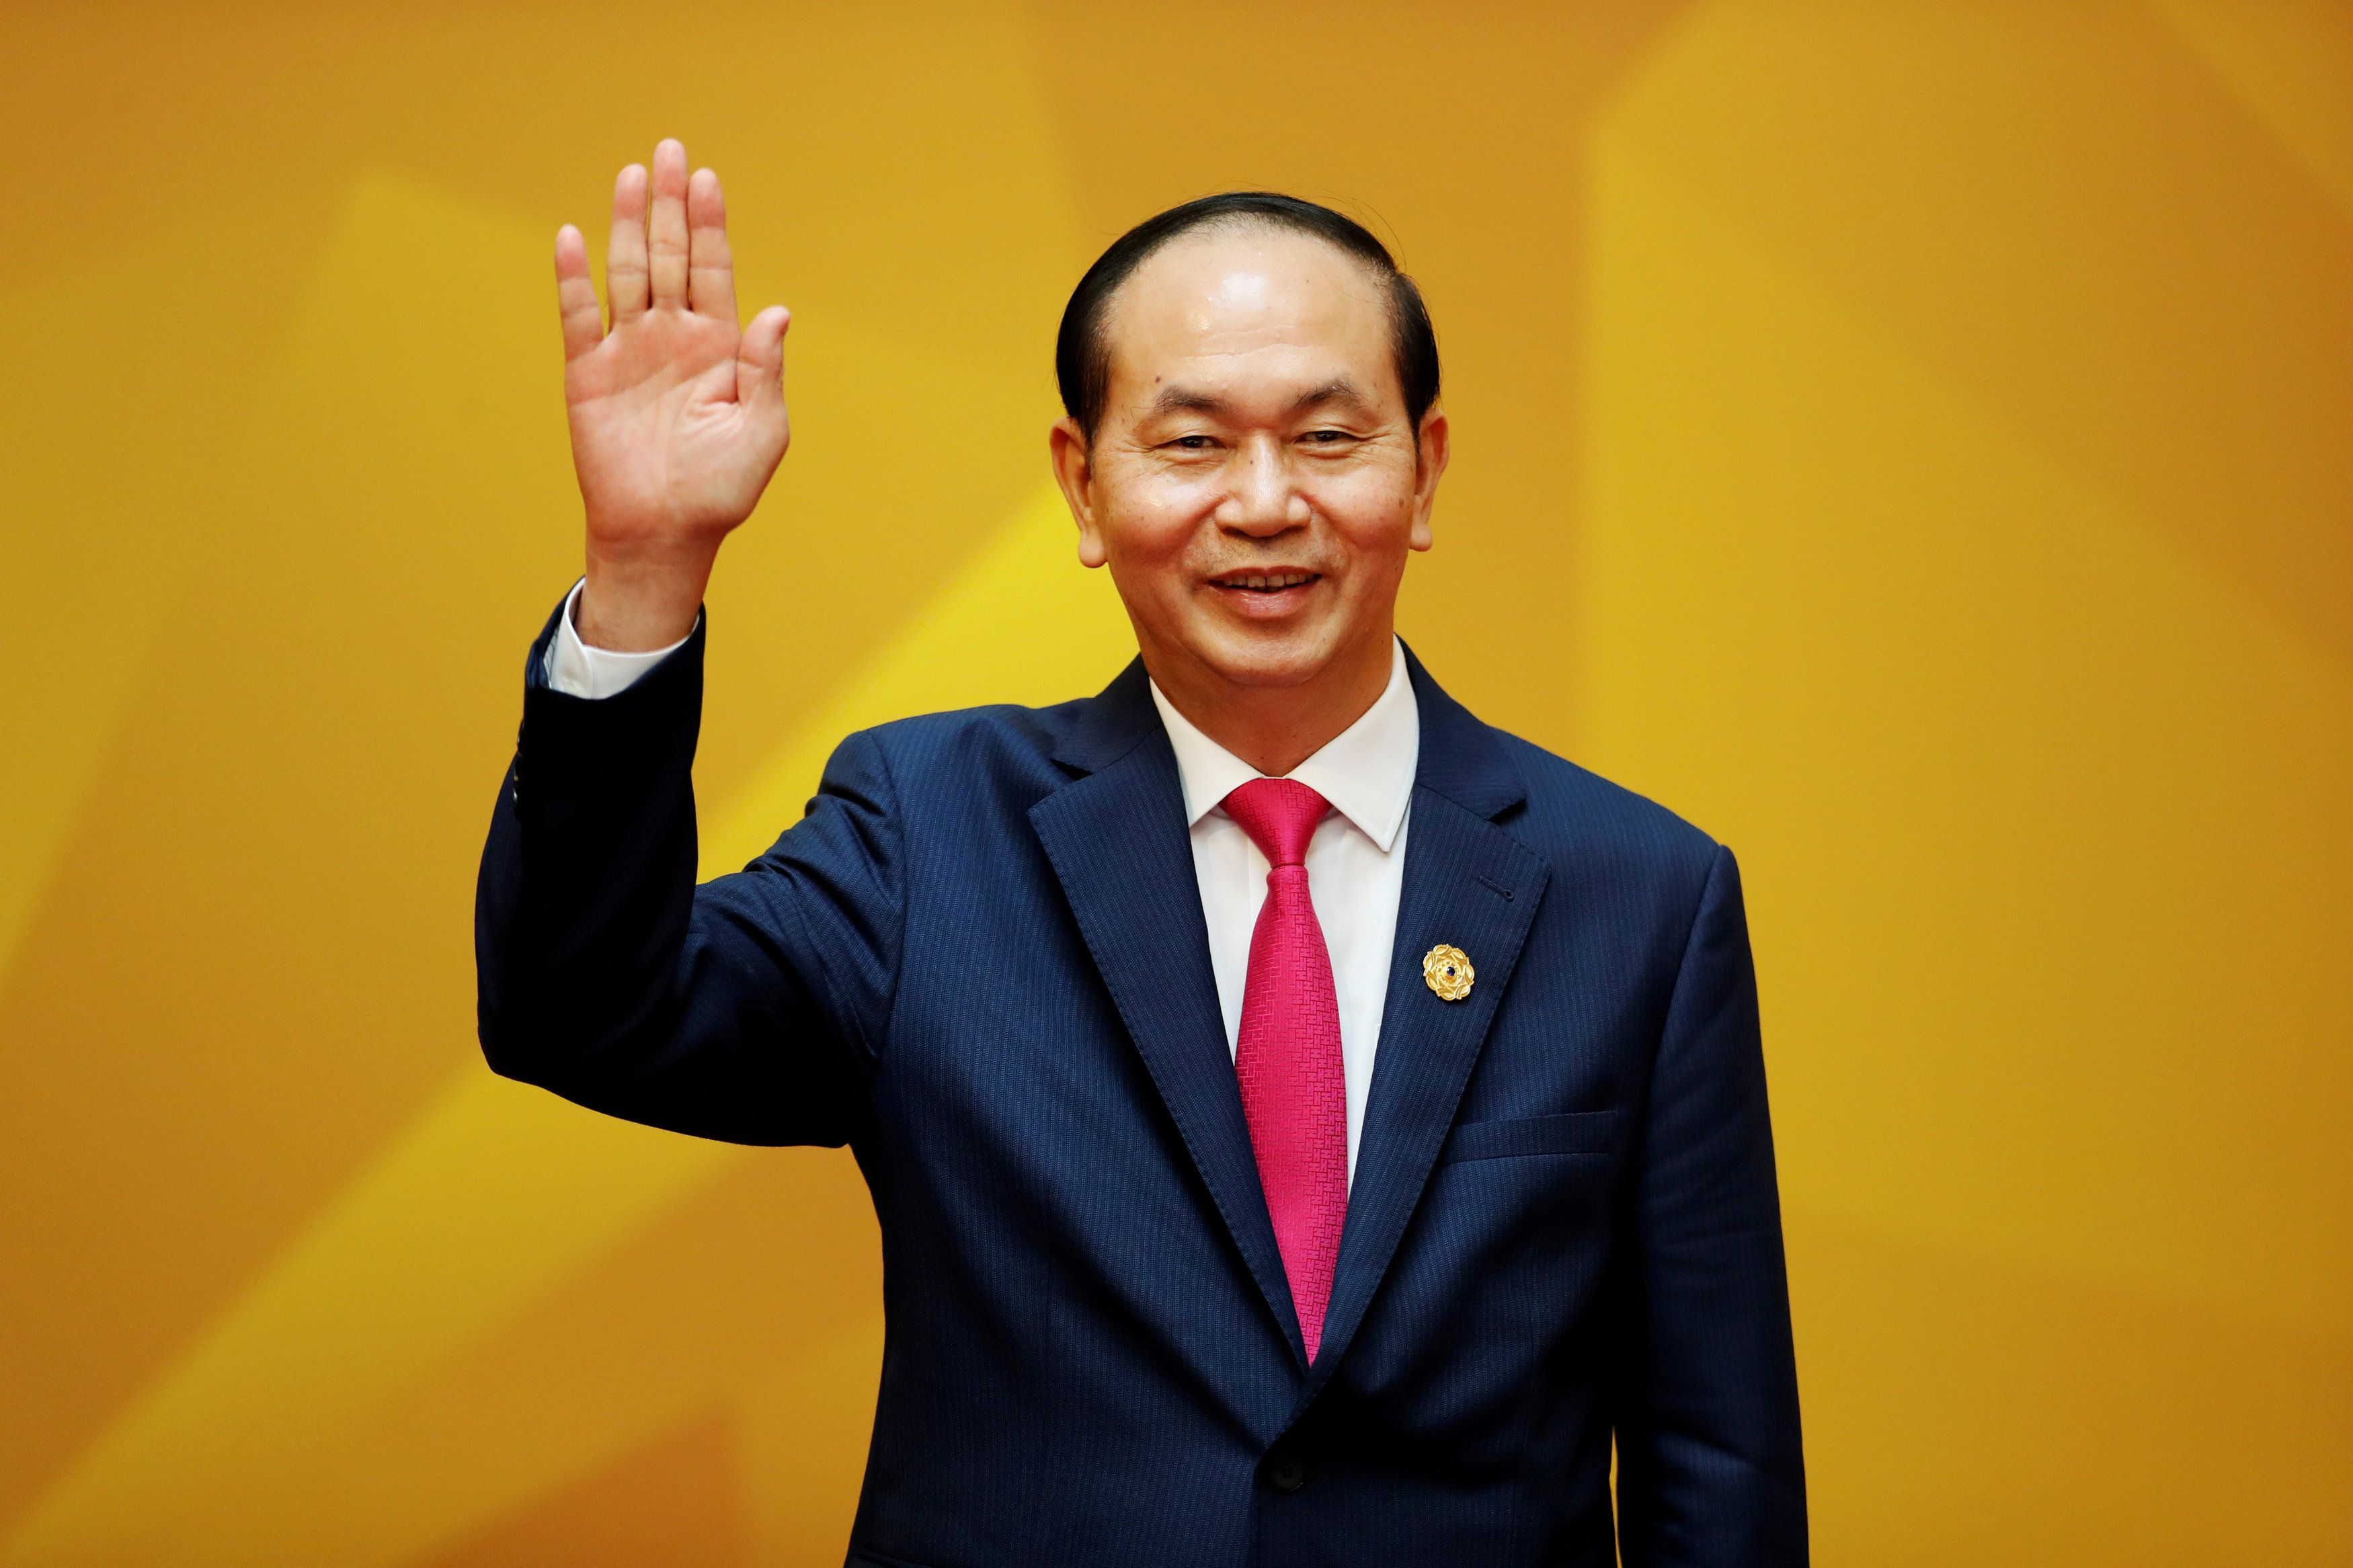 FILE PHOTO: Vietnam's President Tran Dai Quang attends the APEC Economic Leaders' Meeting in Danang, Vietnam November 11, 2017. REUTERS/Jorge Silva/File Photo